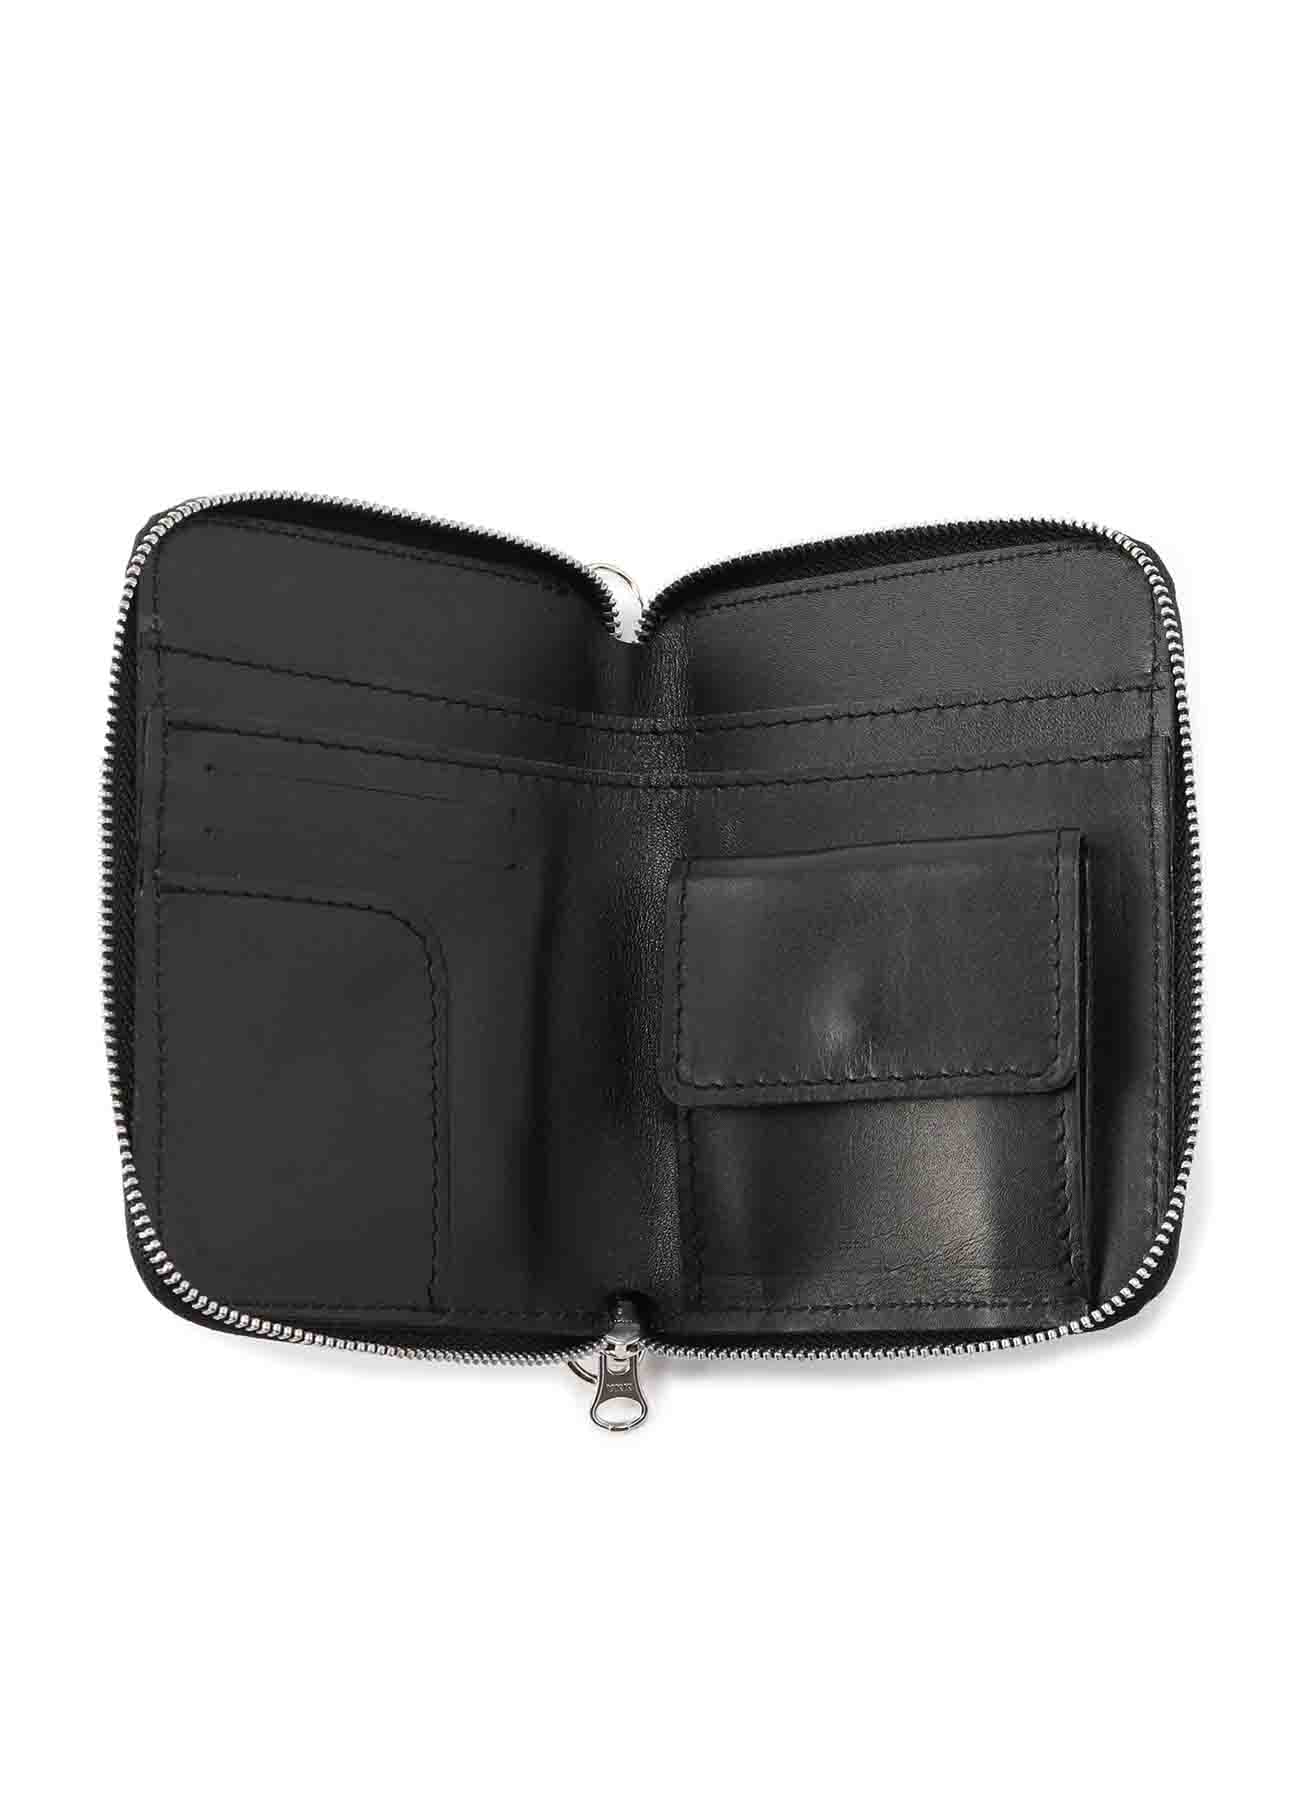 2021 Material Print Leather C Rubber Chain Wallet